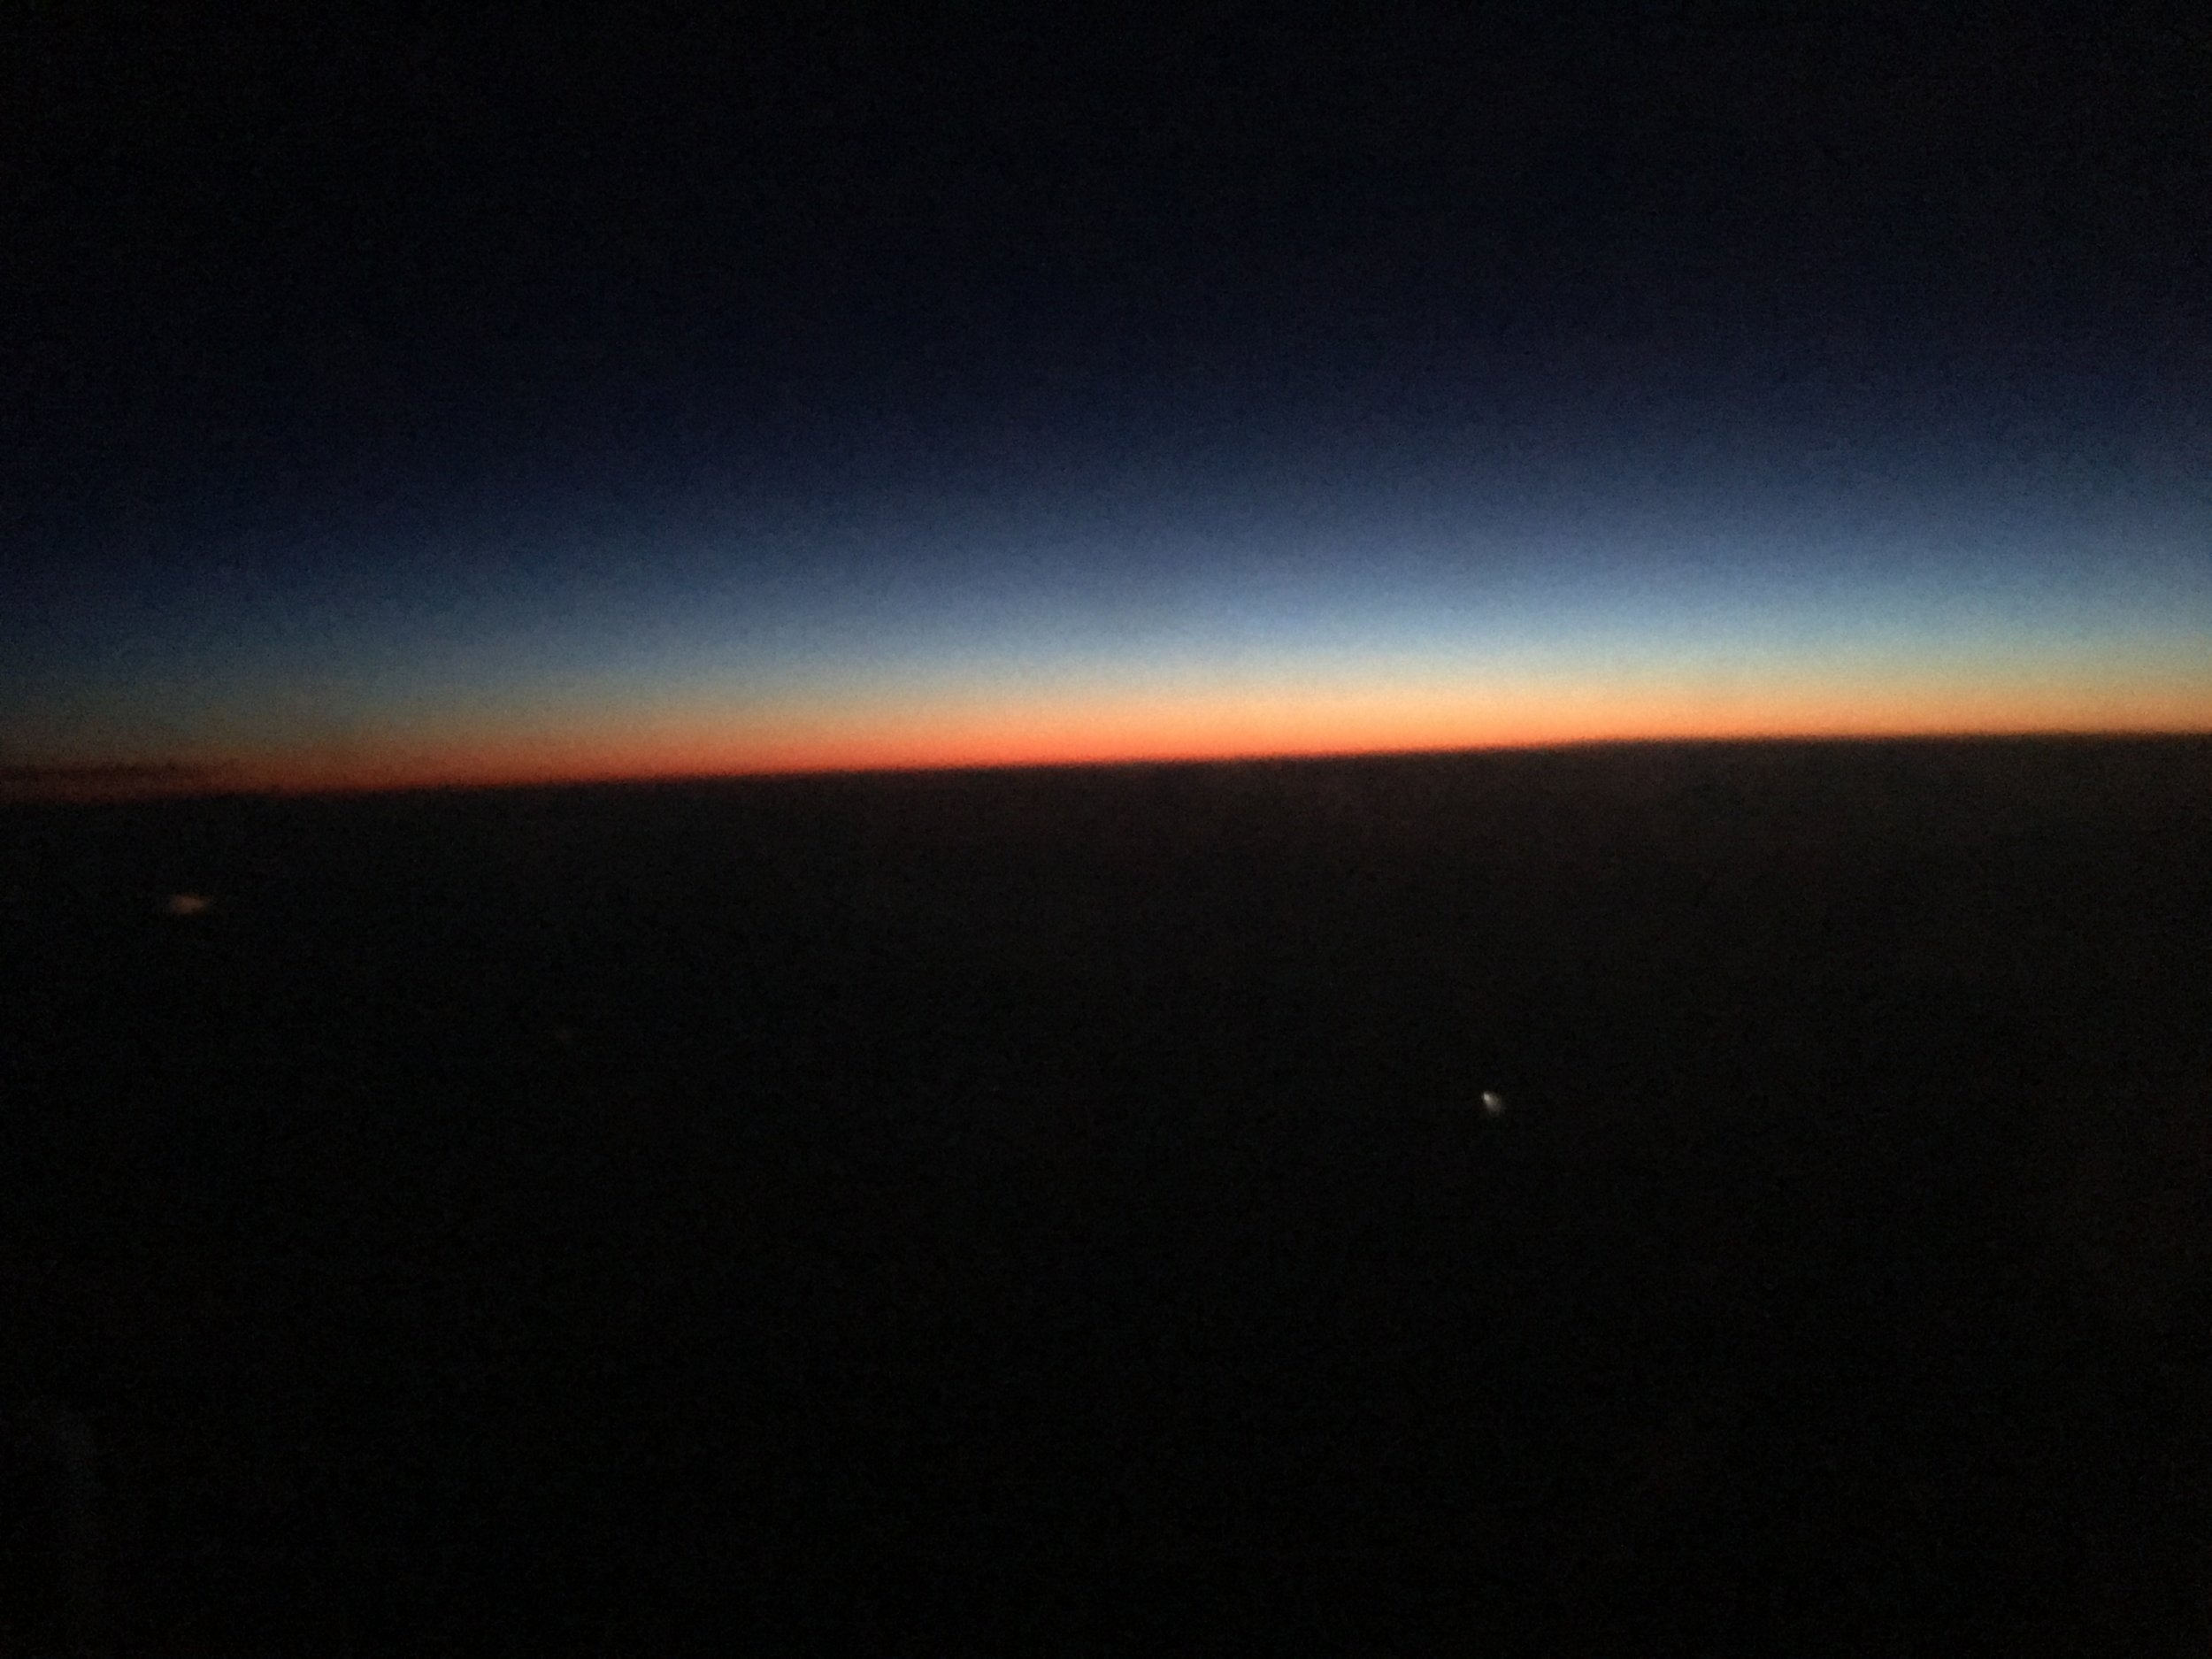 Now that's what I call a sunrise! The sun peaking up from the horizon as we flew from Iceland to Scotland.